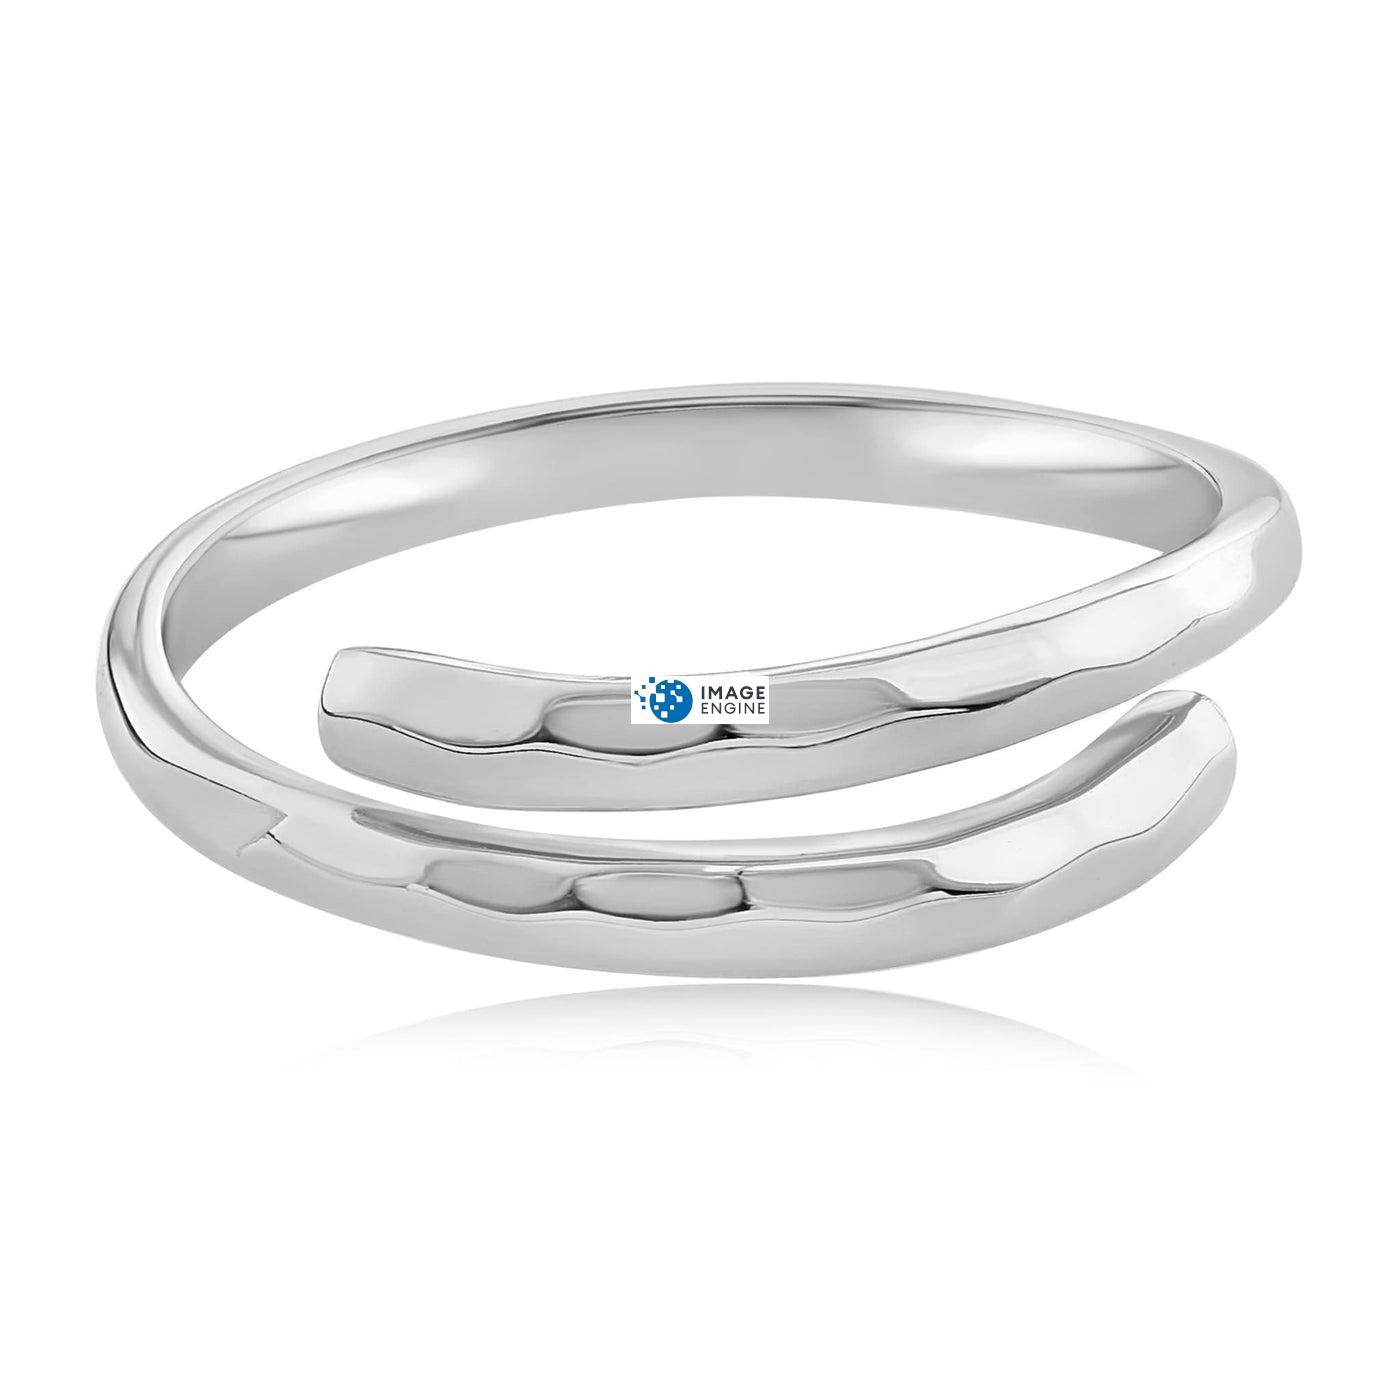 Minimalist Thumb Ring - Front View Facing Down - 925 Sterling Silver